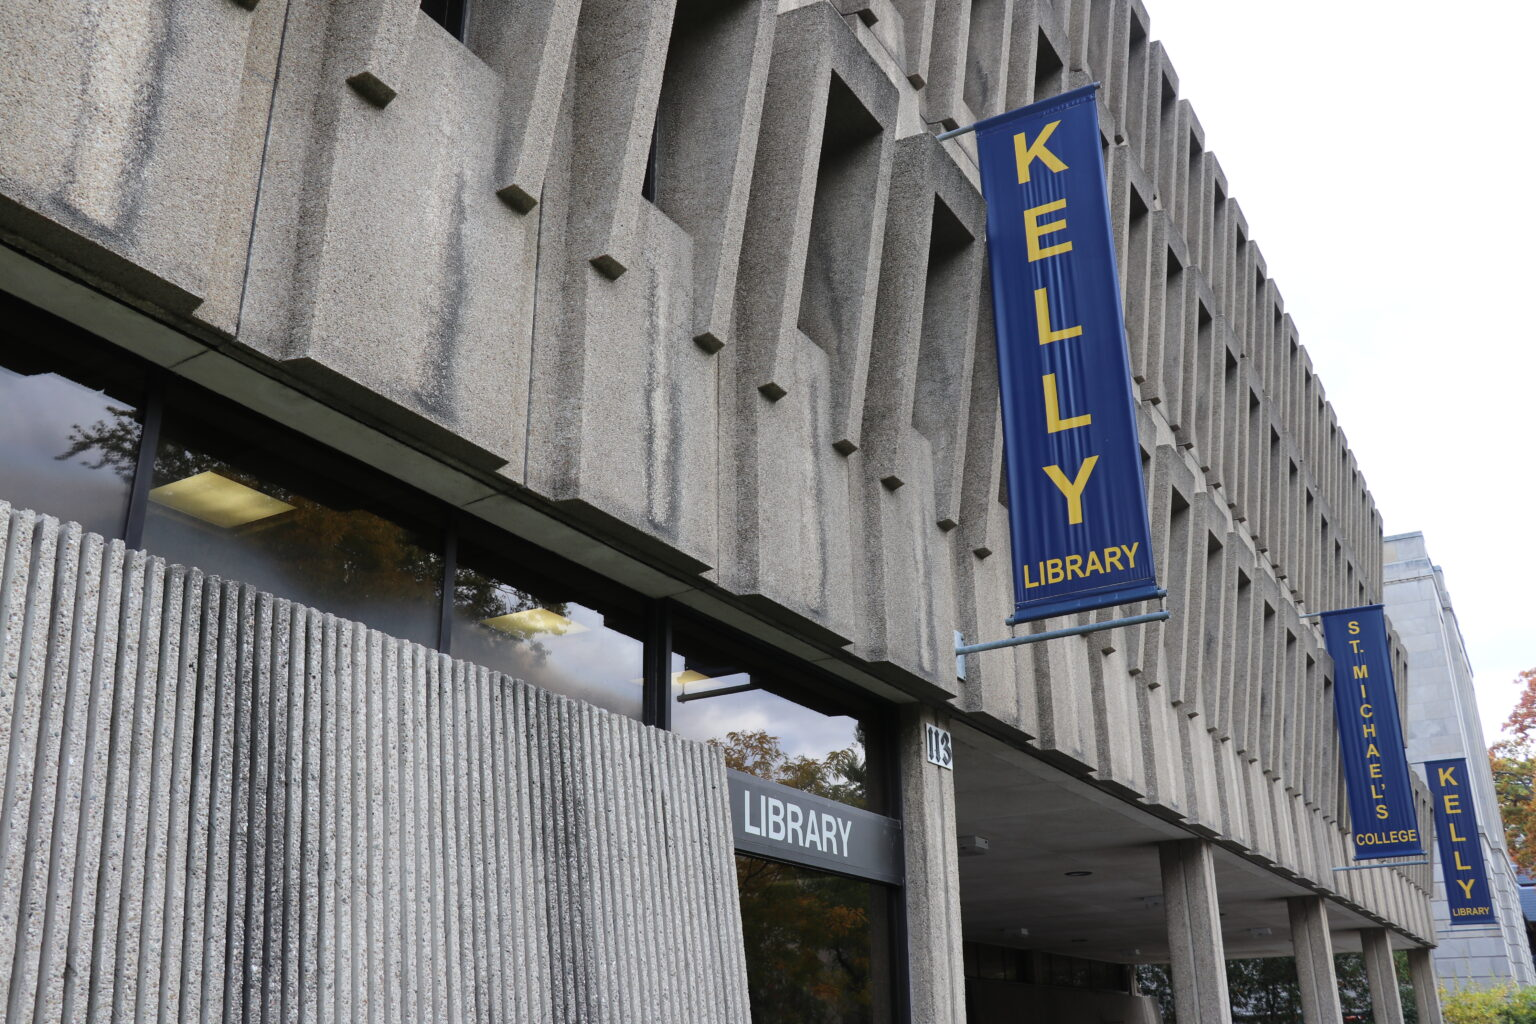 Photograph of the Kelly Library exterior